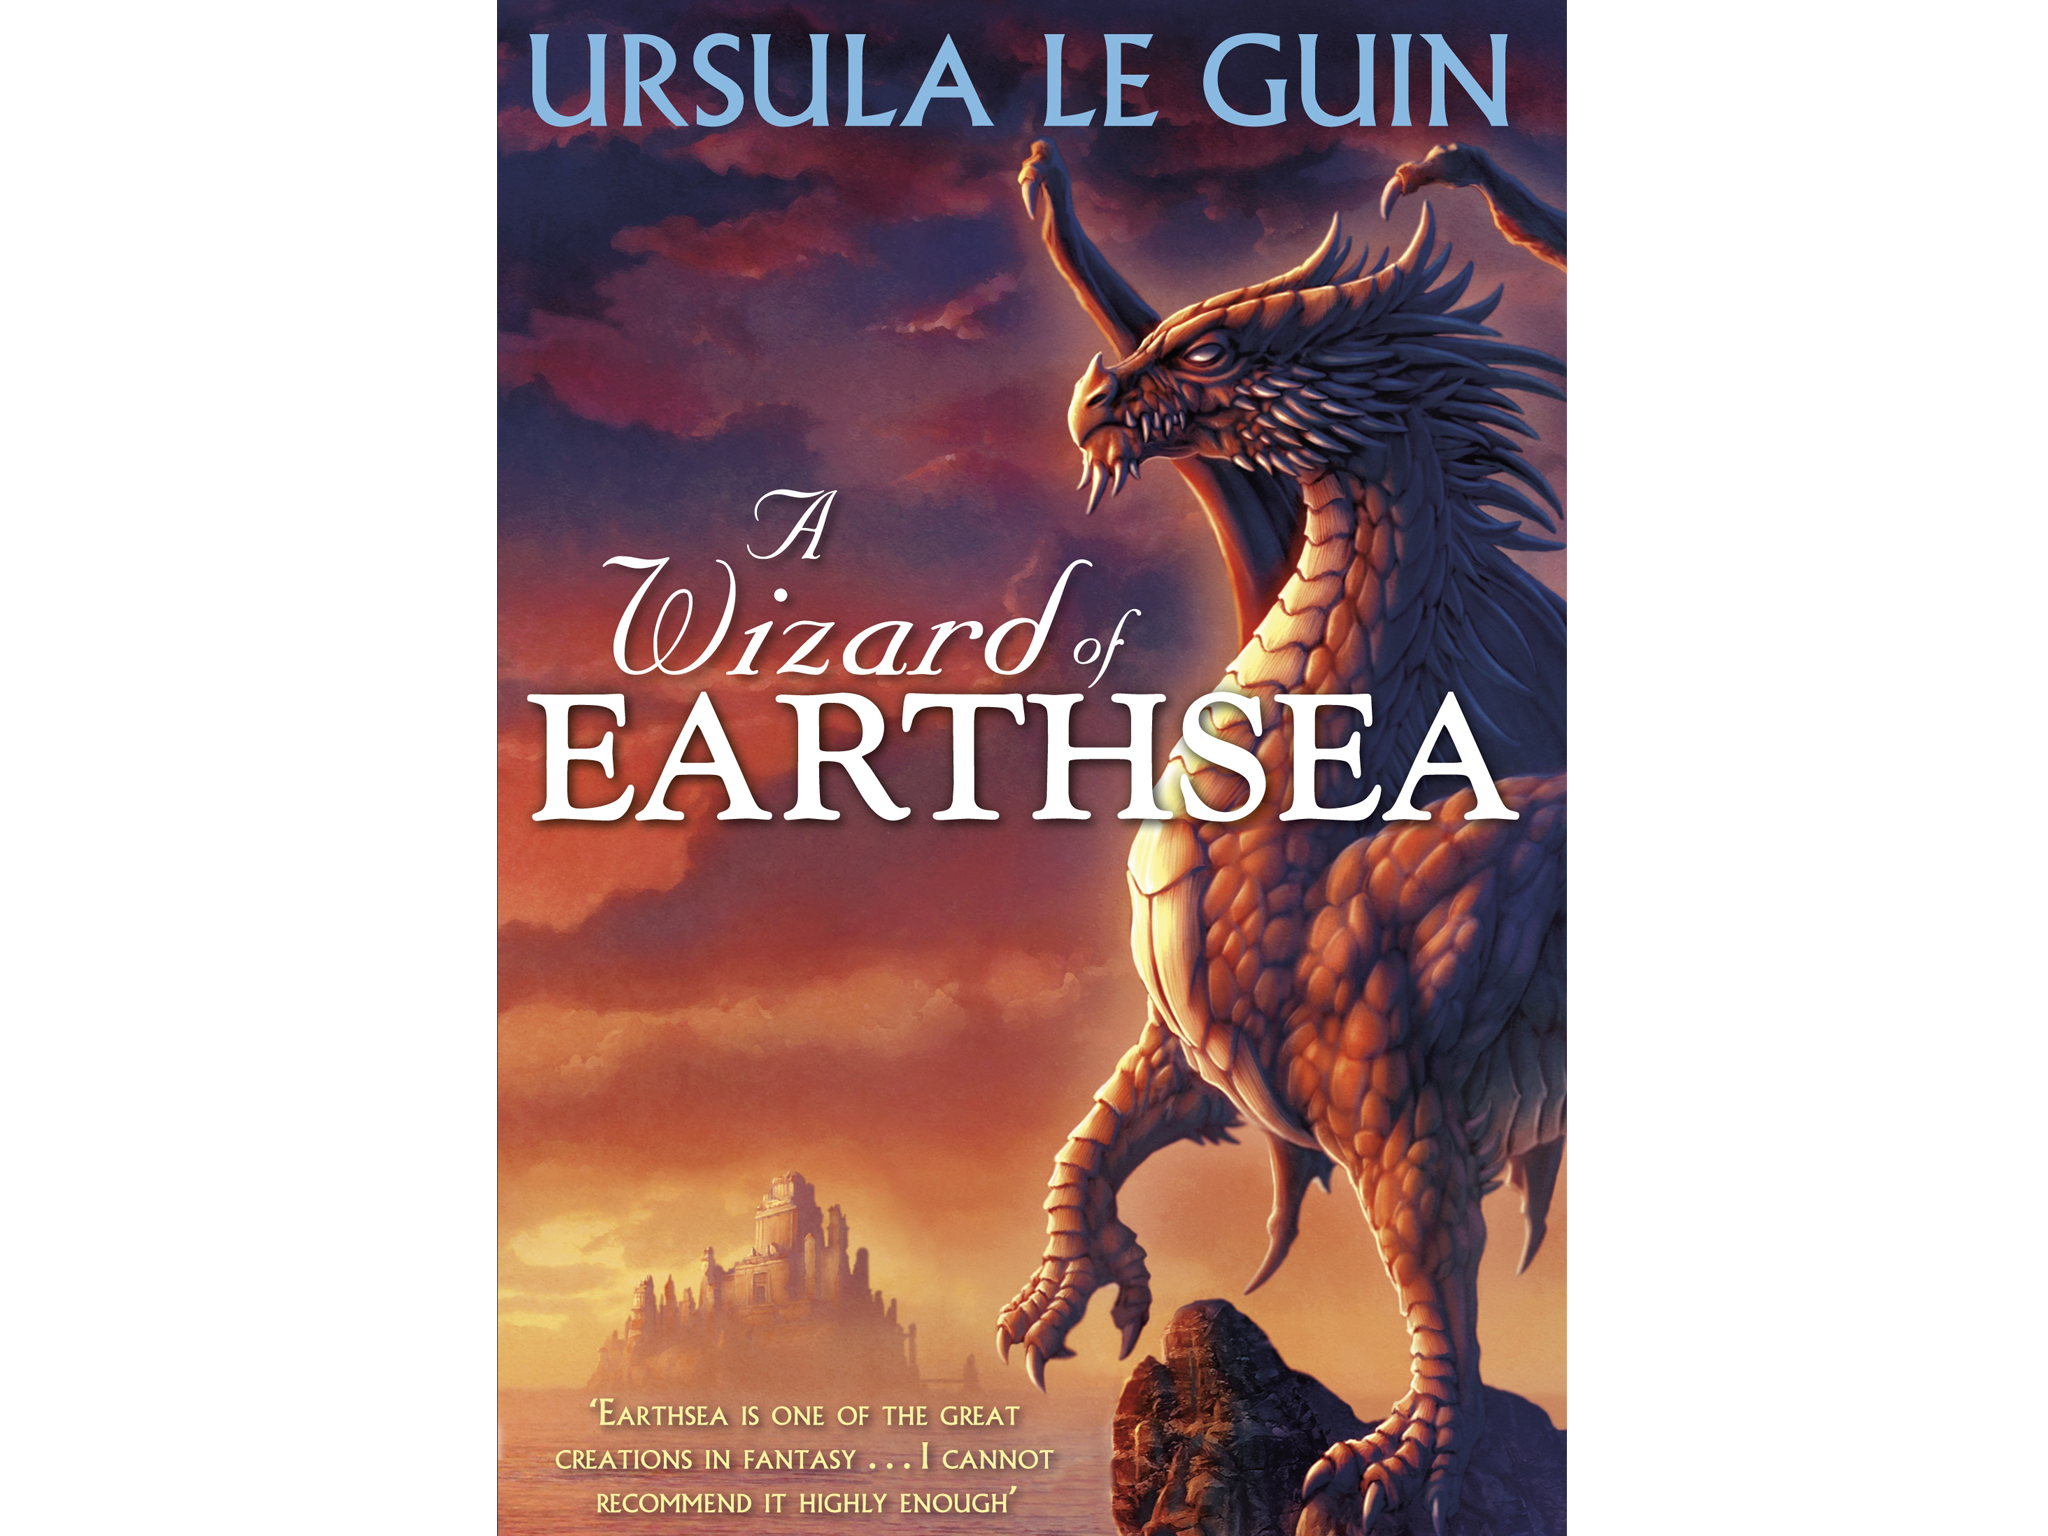 100 best children's books: The Wizard of Earthsea